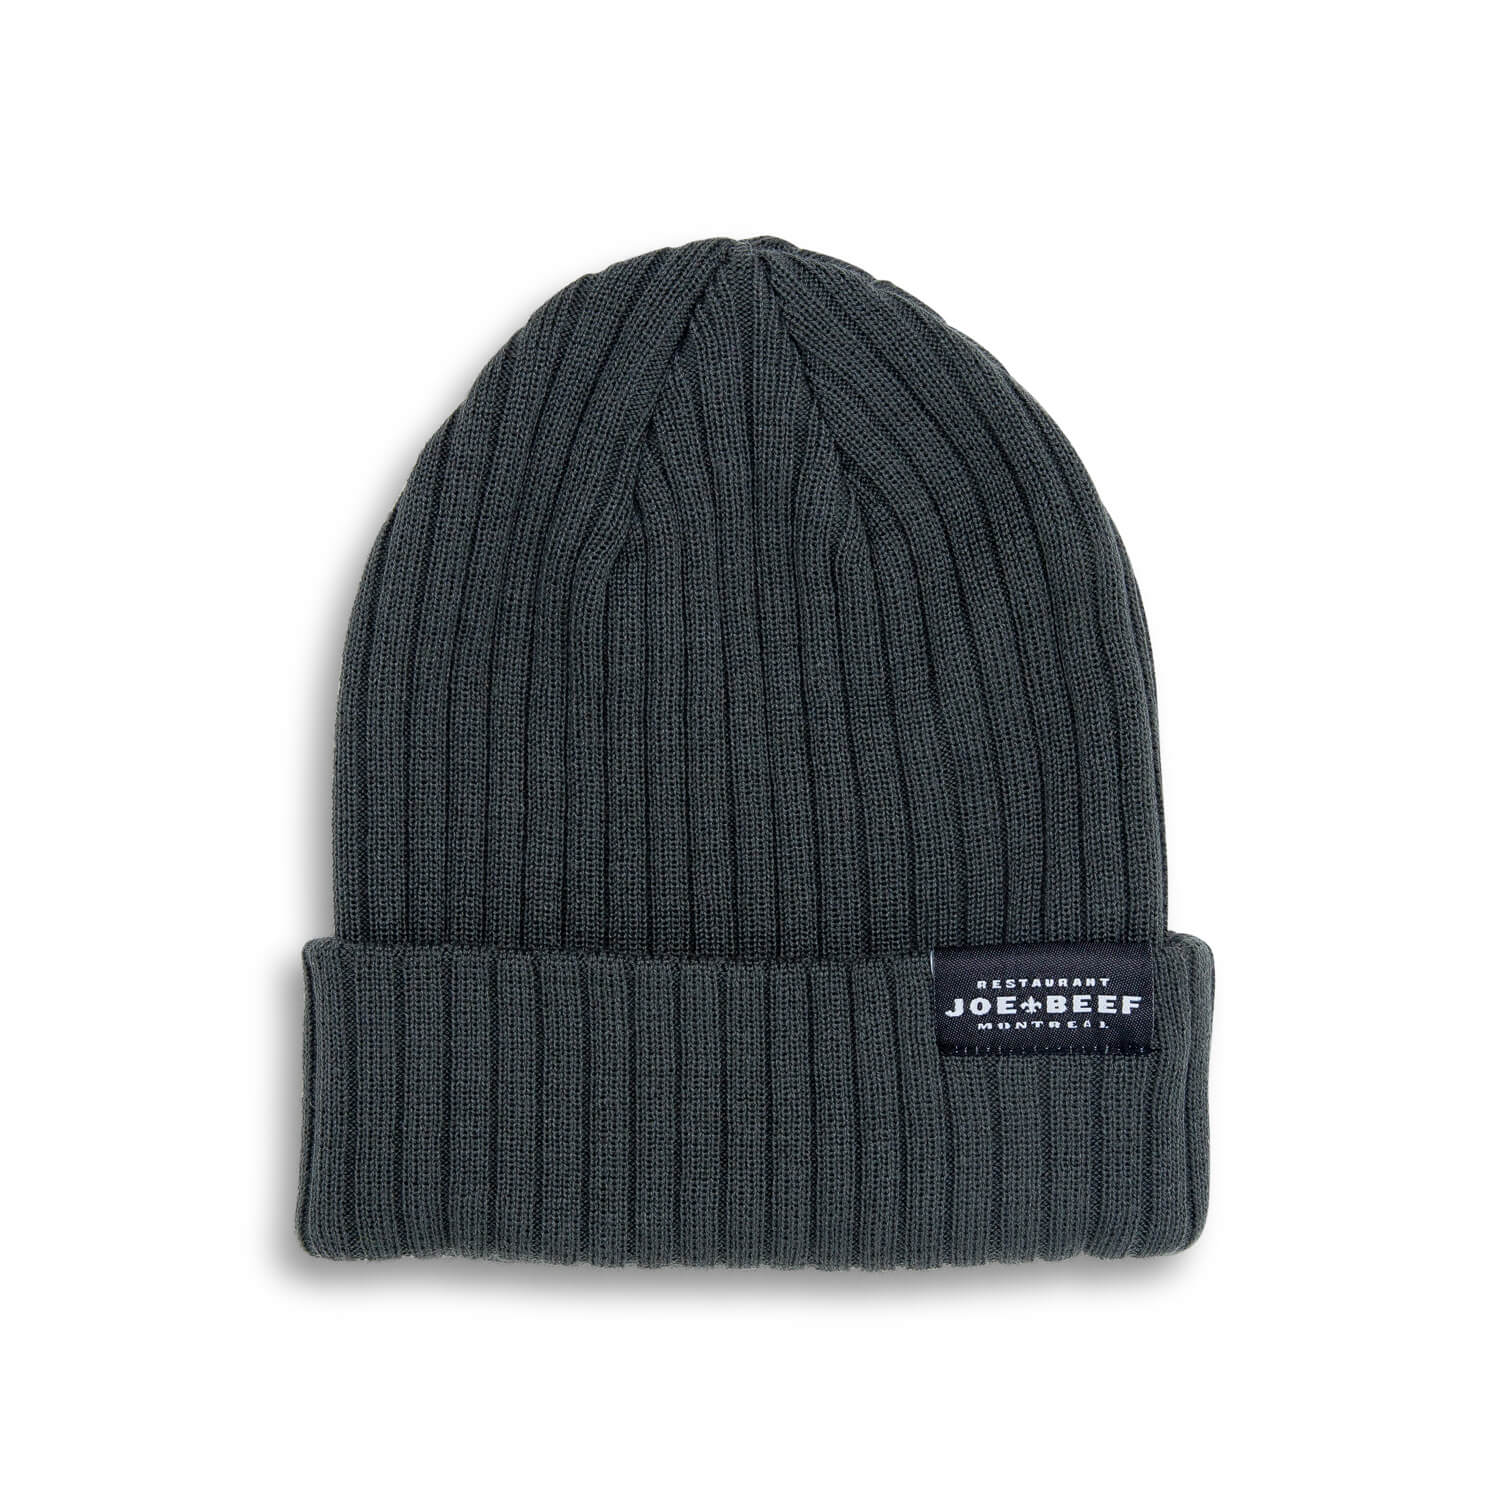 Joe Beef Tuque (Grey)